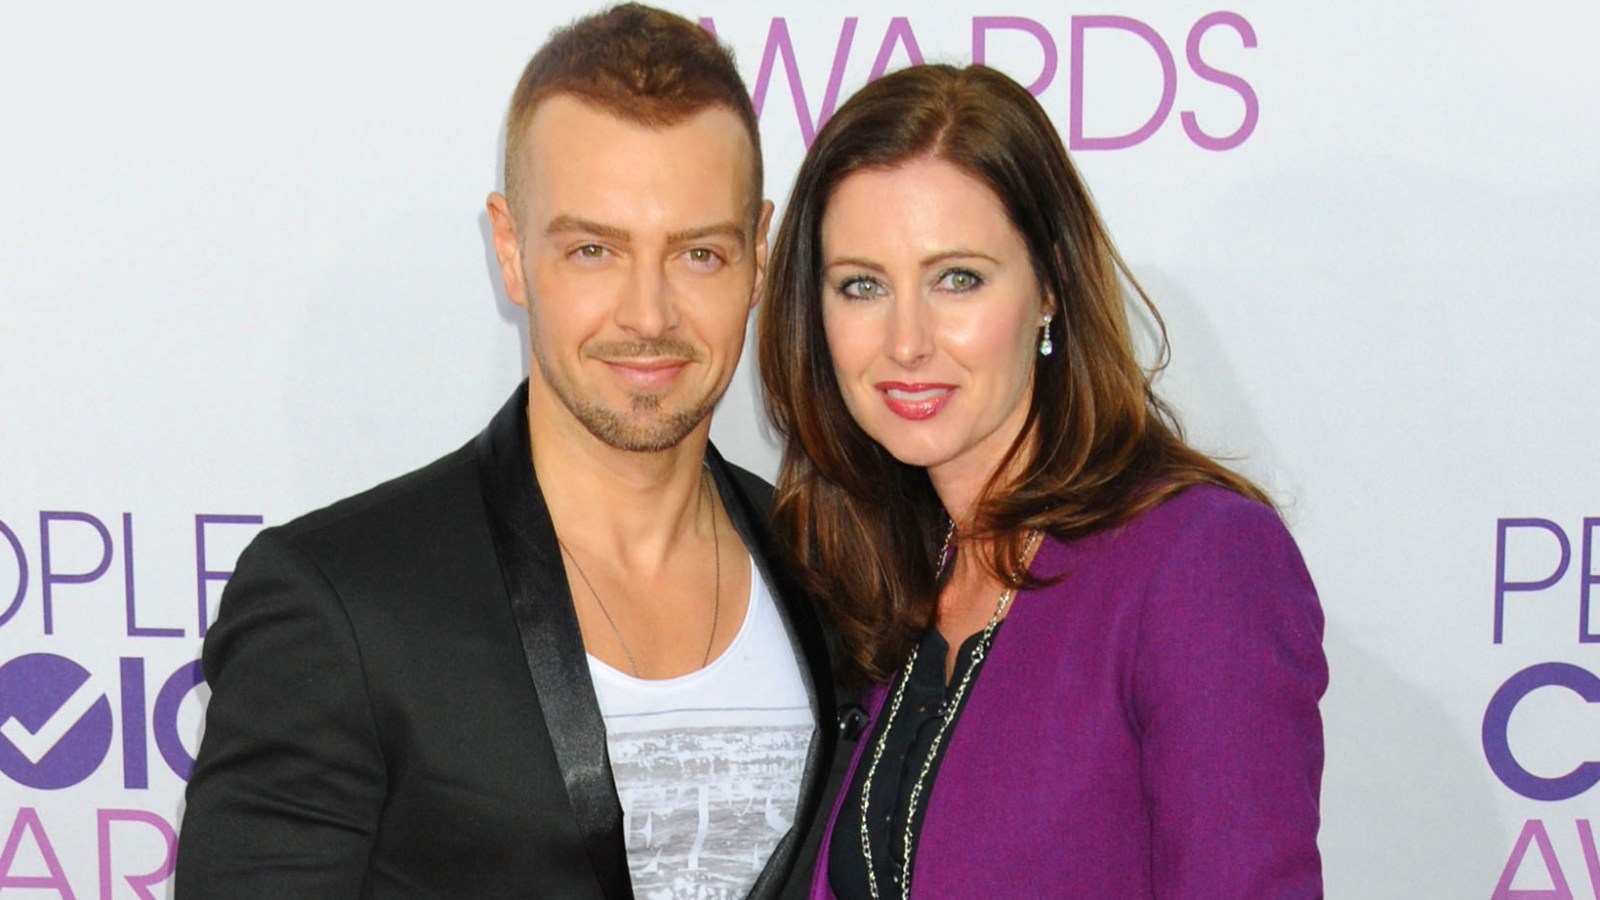 Joey Lawrence Sold Clothes Before Filing For Bankruptcy